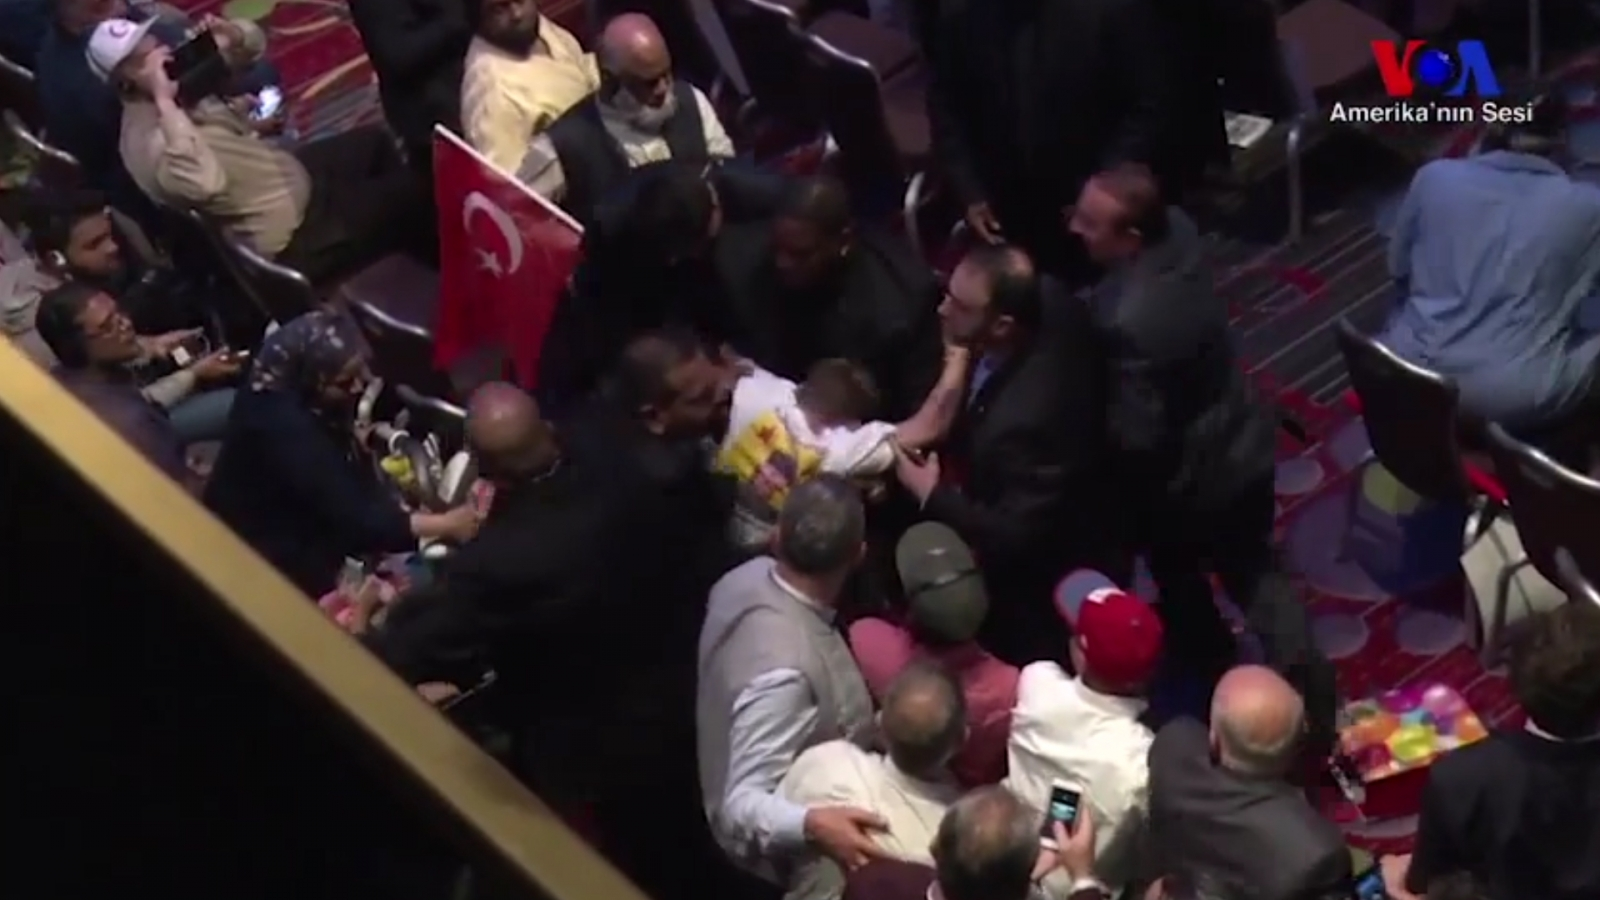 anti-erodgan-protesters-punched-as-theyre-escorted-out-of-new-york-event